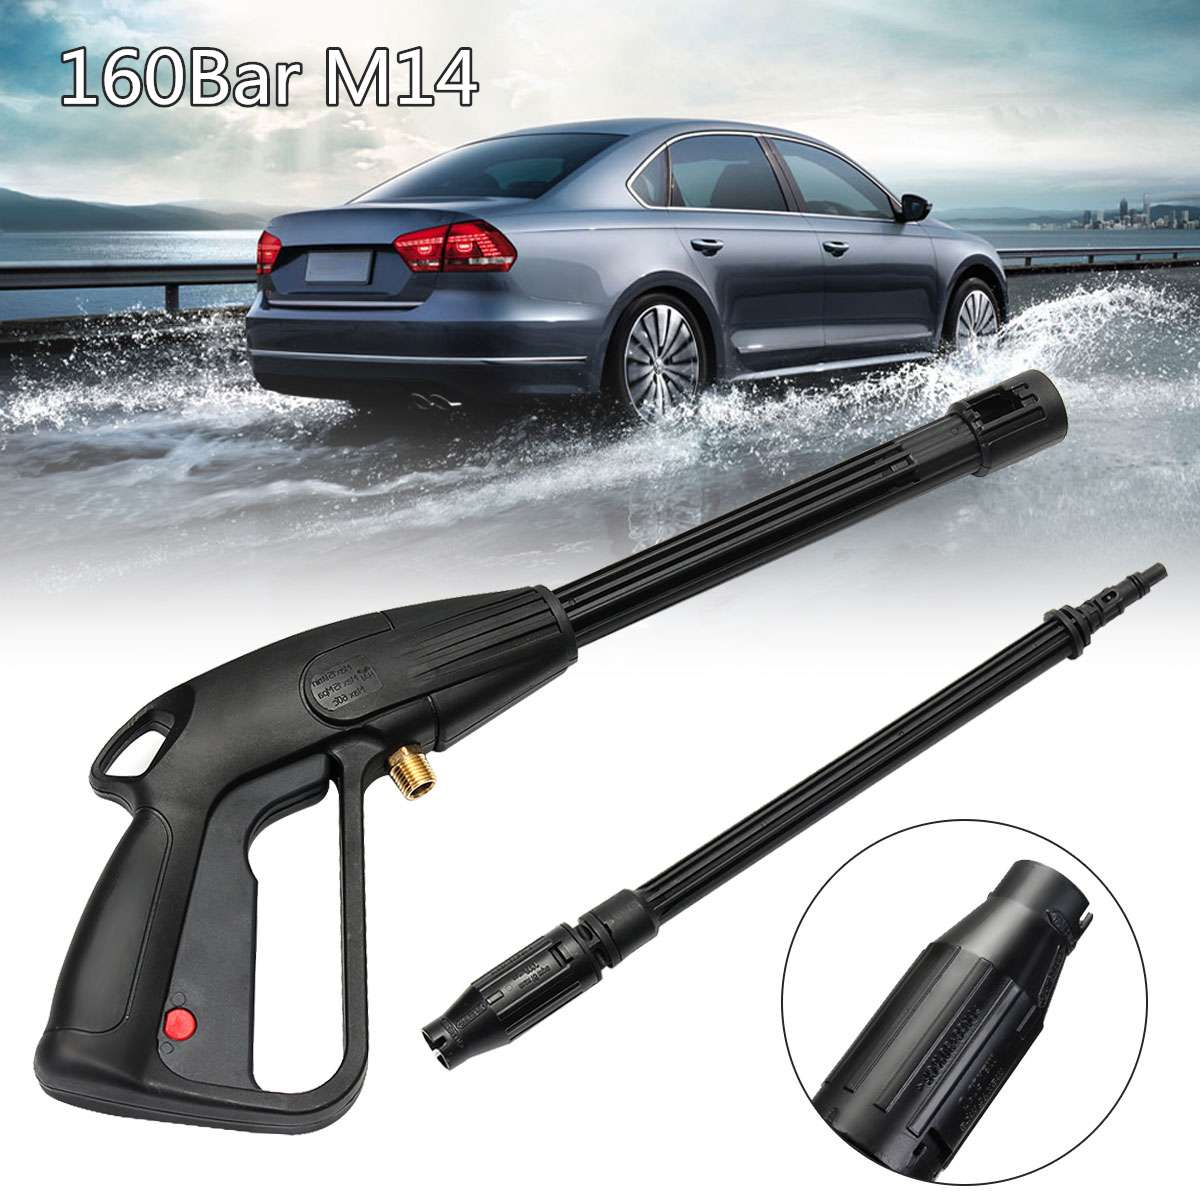 160bar M14 High Pressure Washer Spray Pipeline Car Wash Cleaning Lance Wand Kit